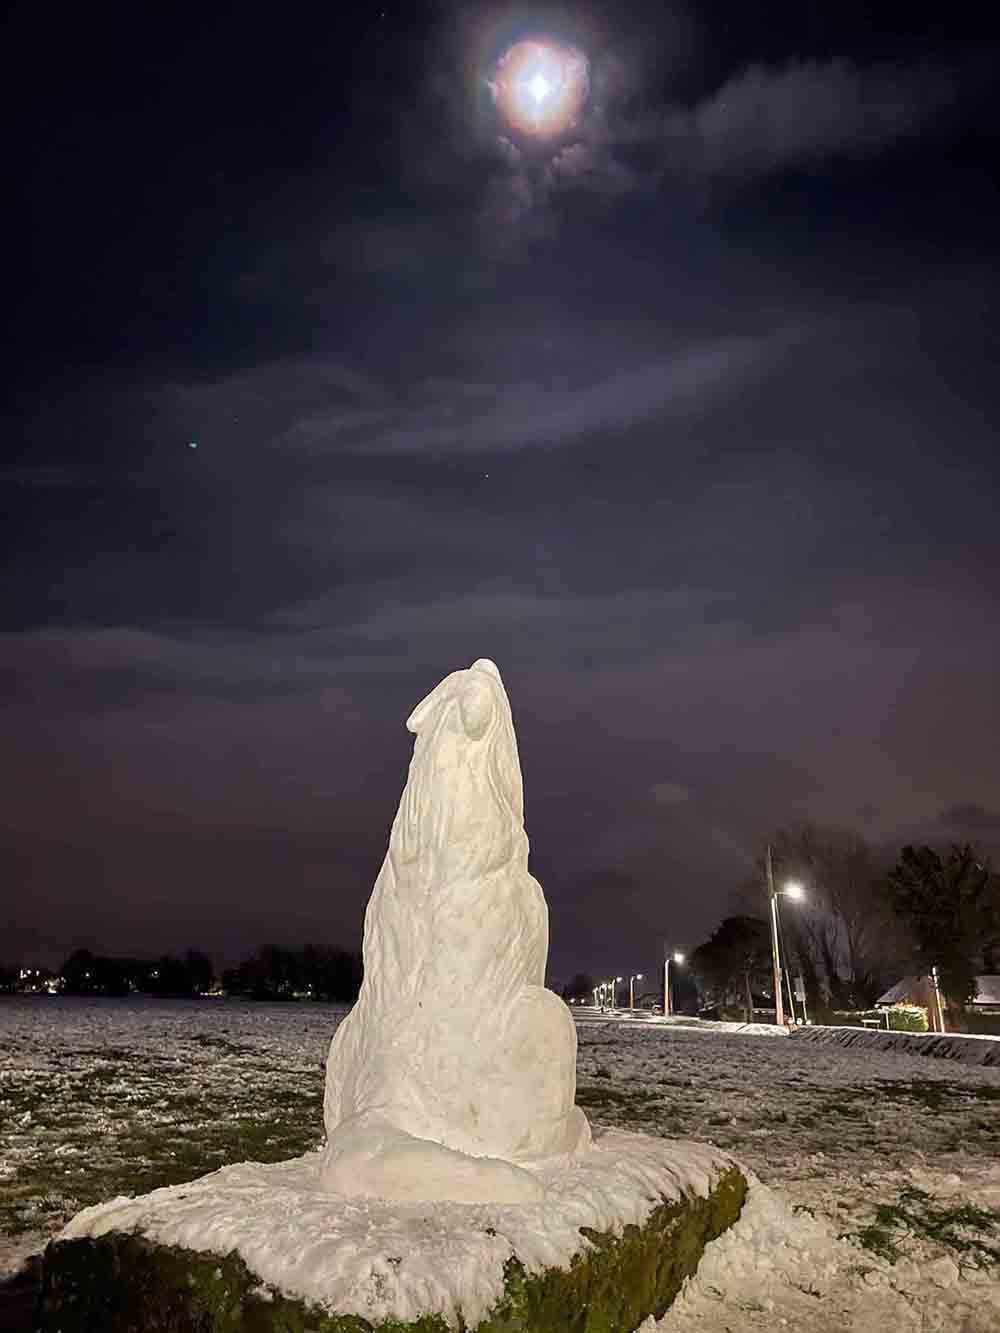 Amazing snow sculpture shows wolf howling at the moon - Viral News